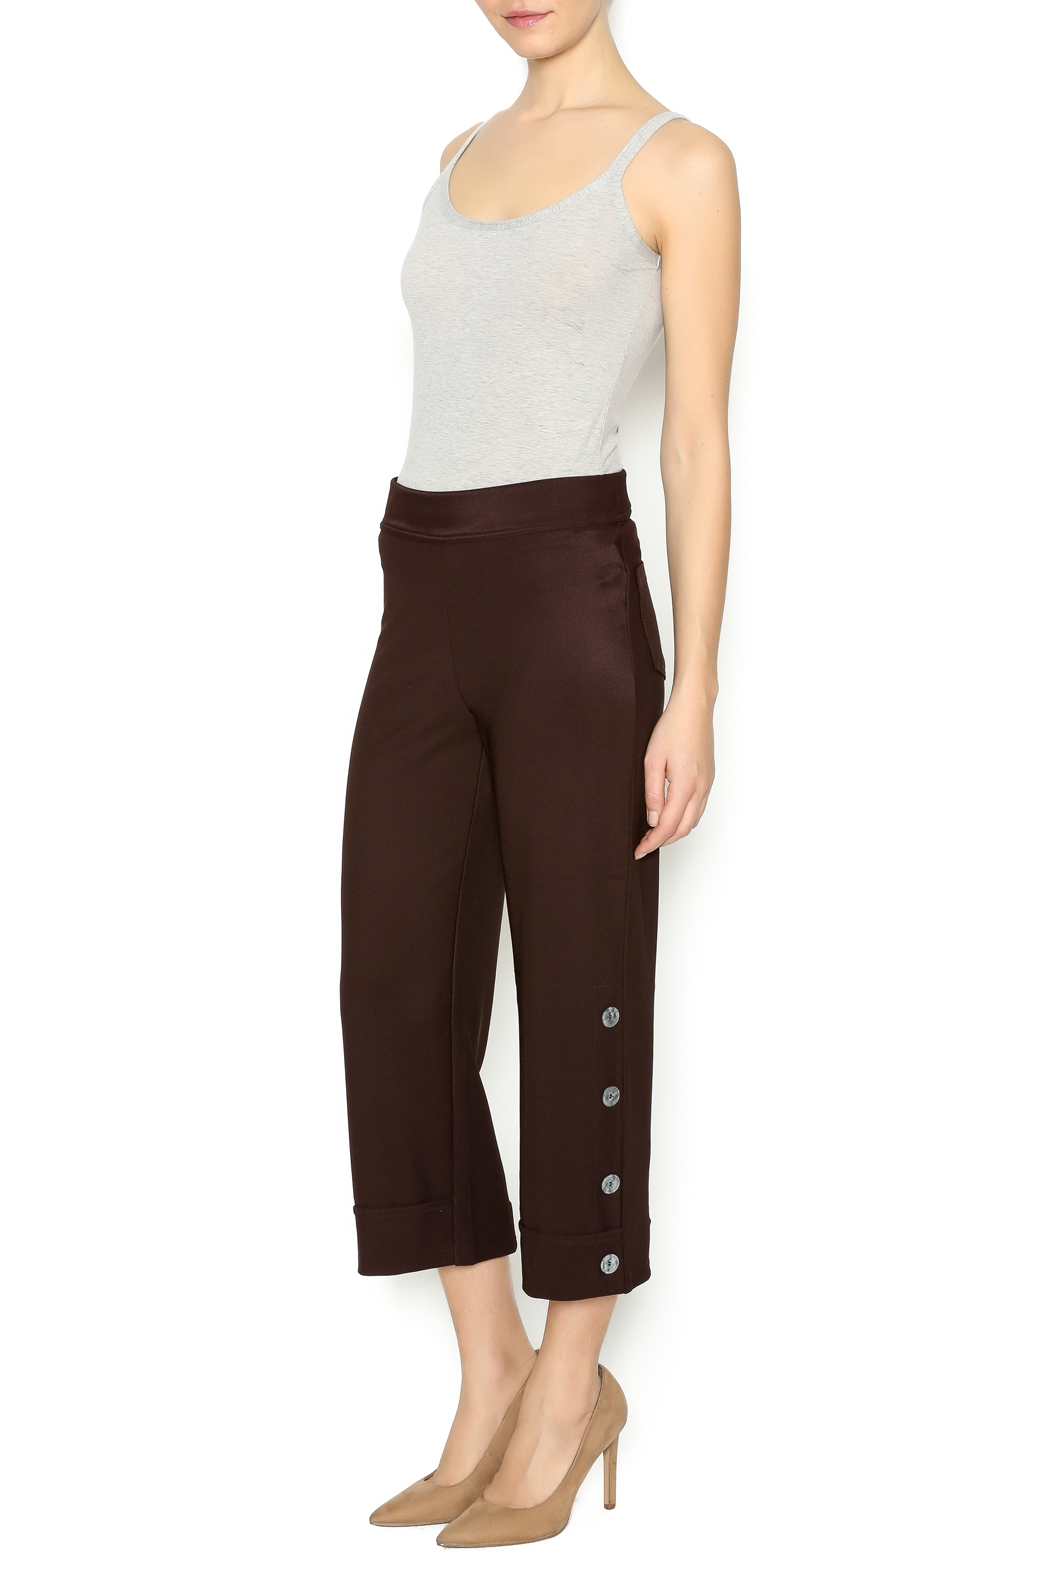 Talk of the Walk 4-Button Boot Pant - Front Full Image